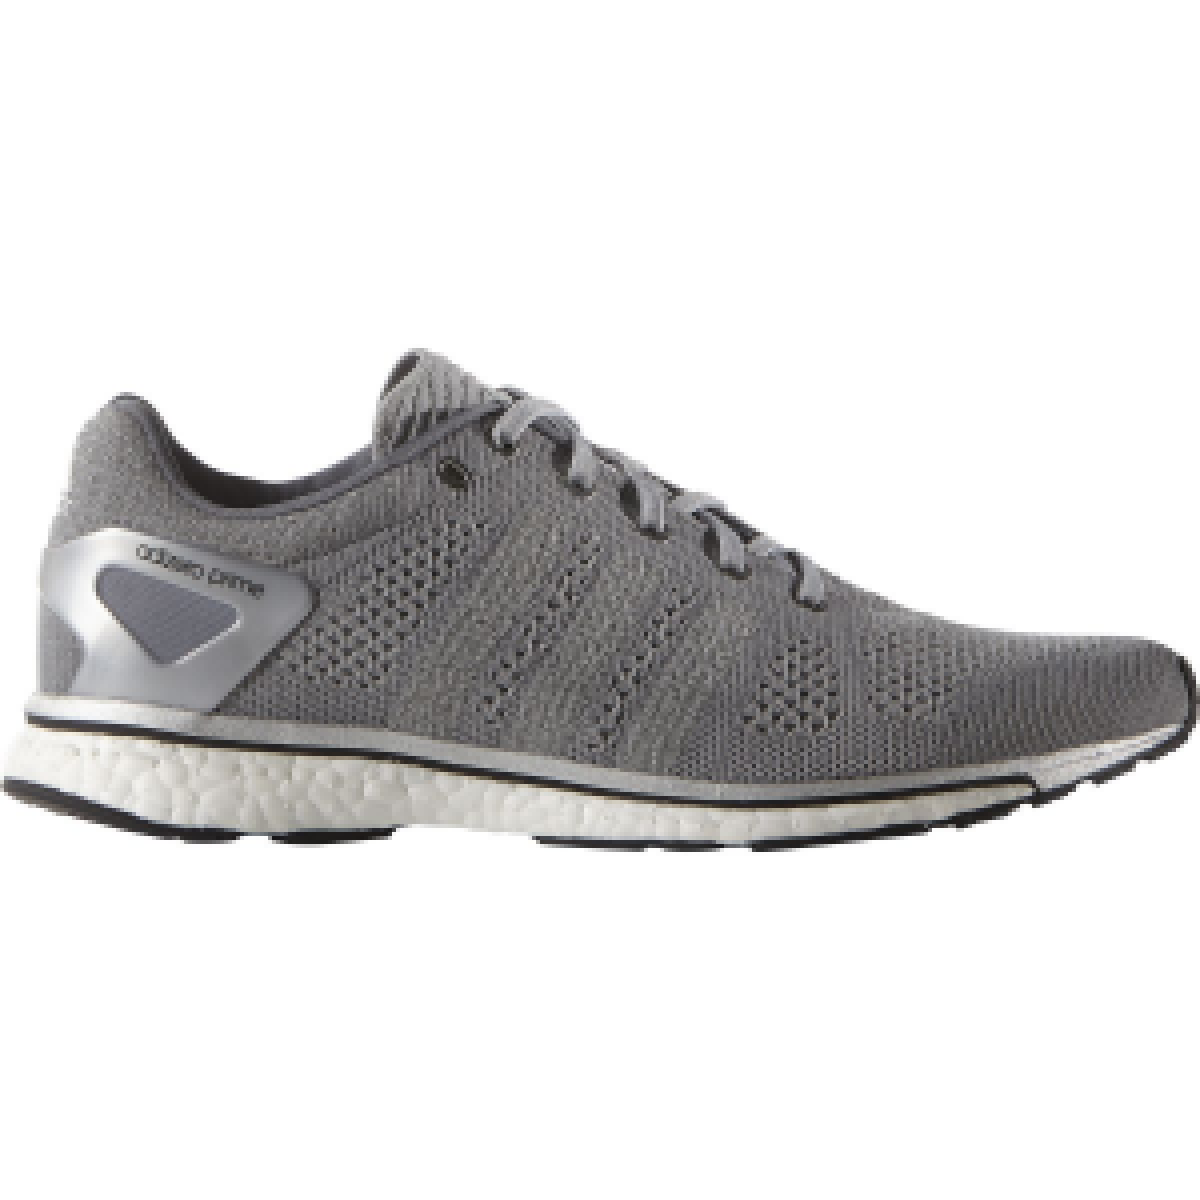 new style d3f26 3a6f0 139.96Availability In stock. The Adizero Prime Boost LTD Mens Running  Shoe ...